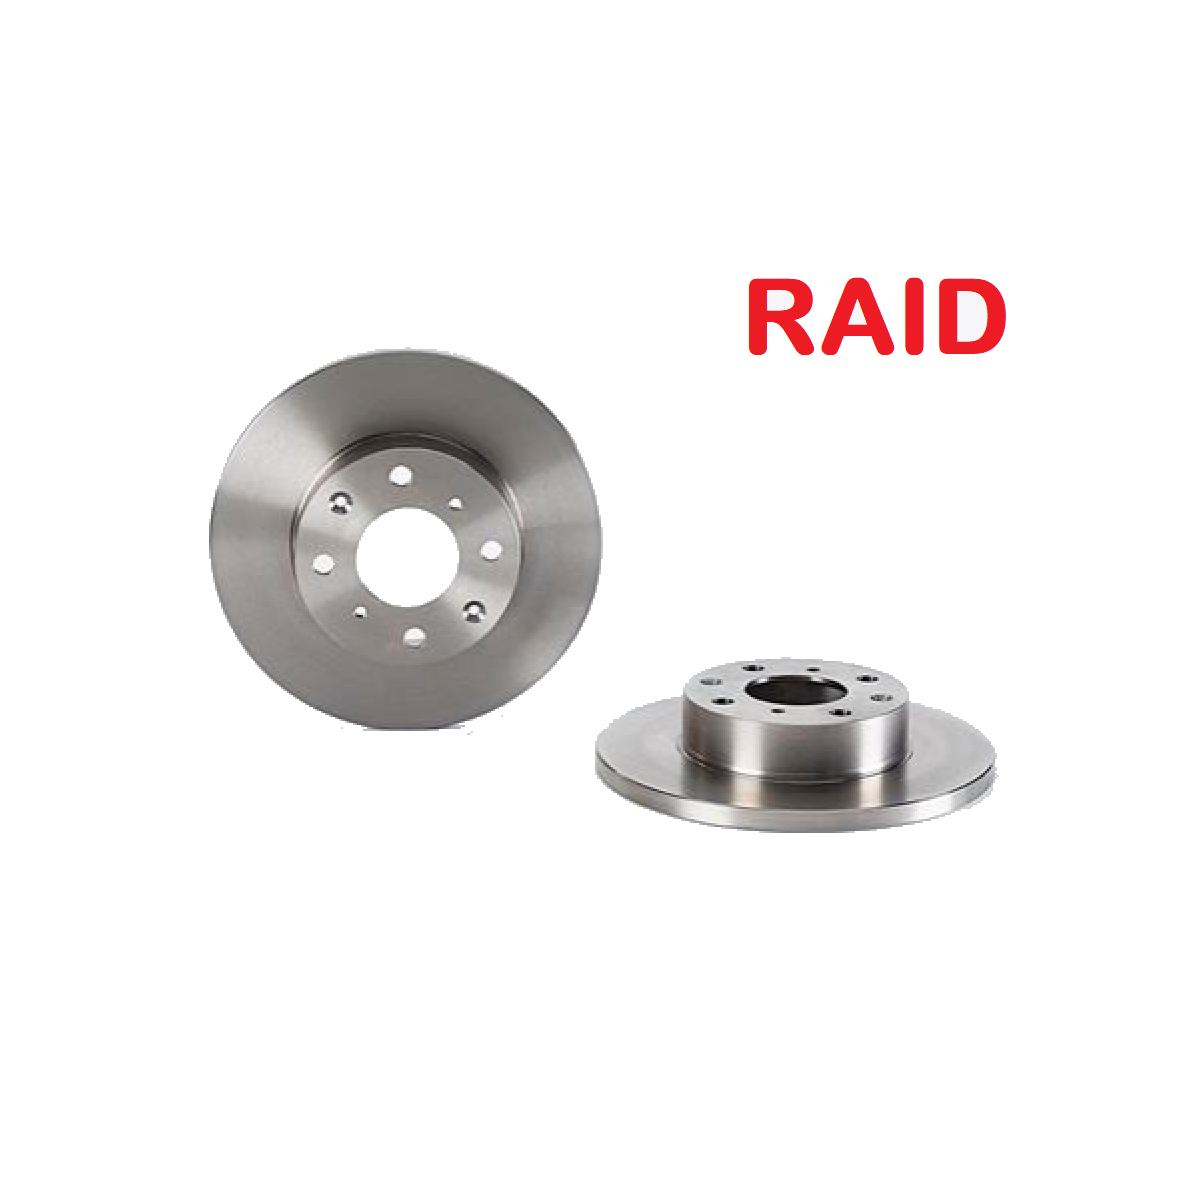 PAIR OF FRONT BRAKE DISCS ROVER 200 - 400 RAID FOR EJP7368